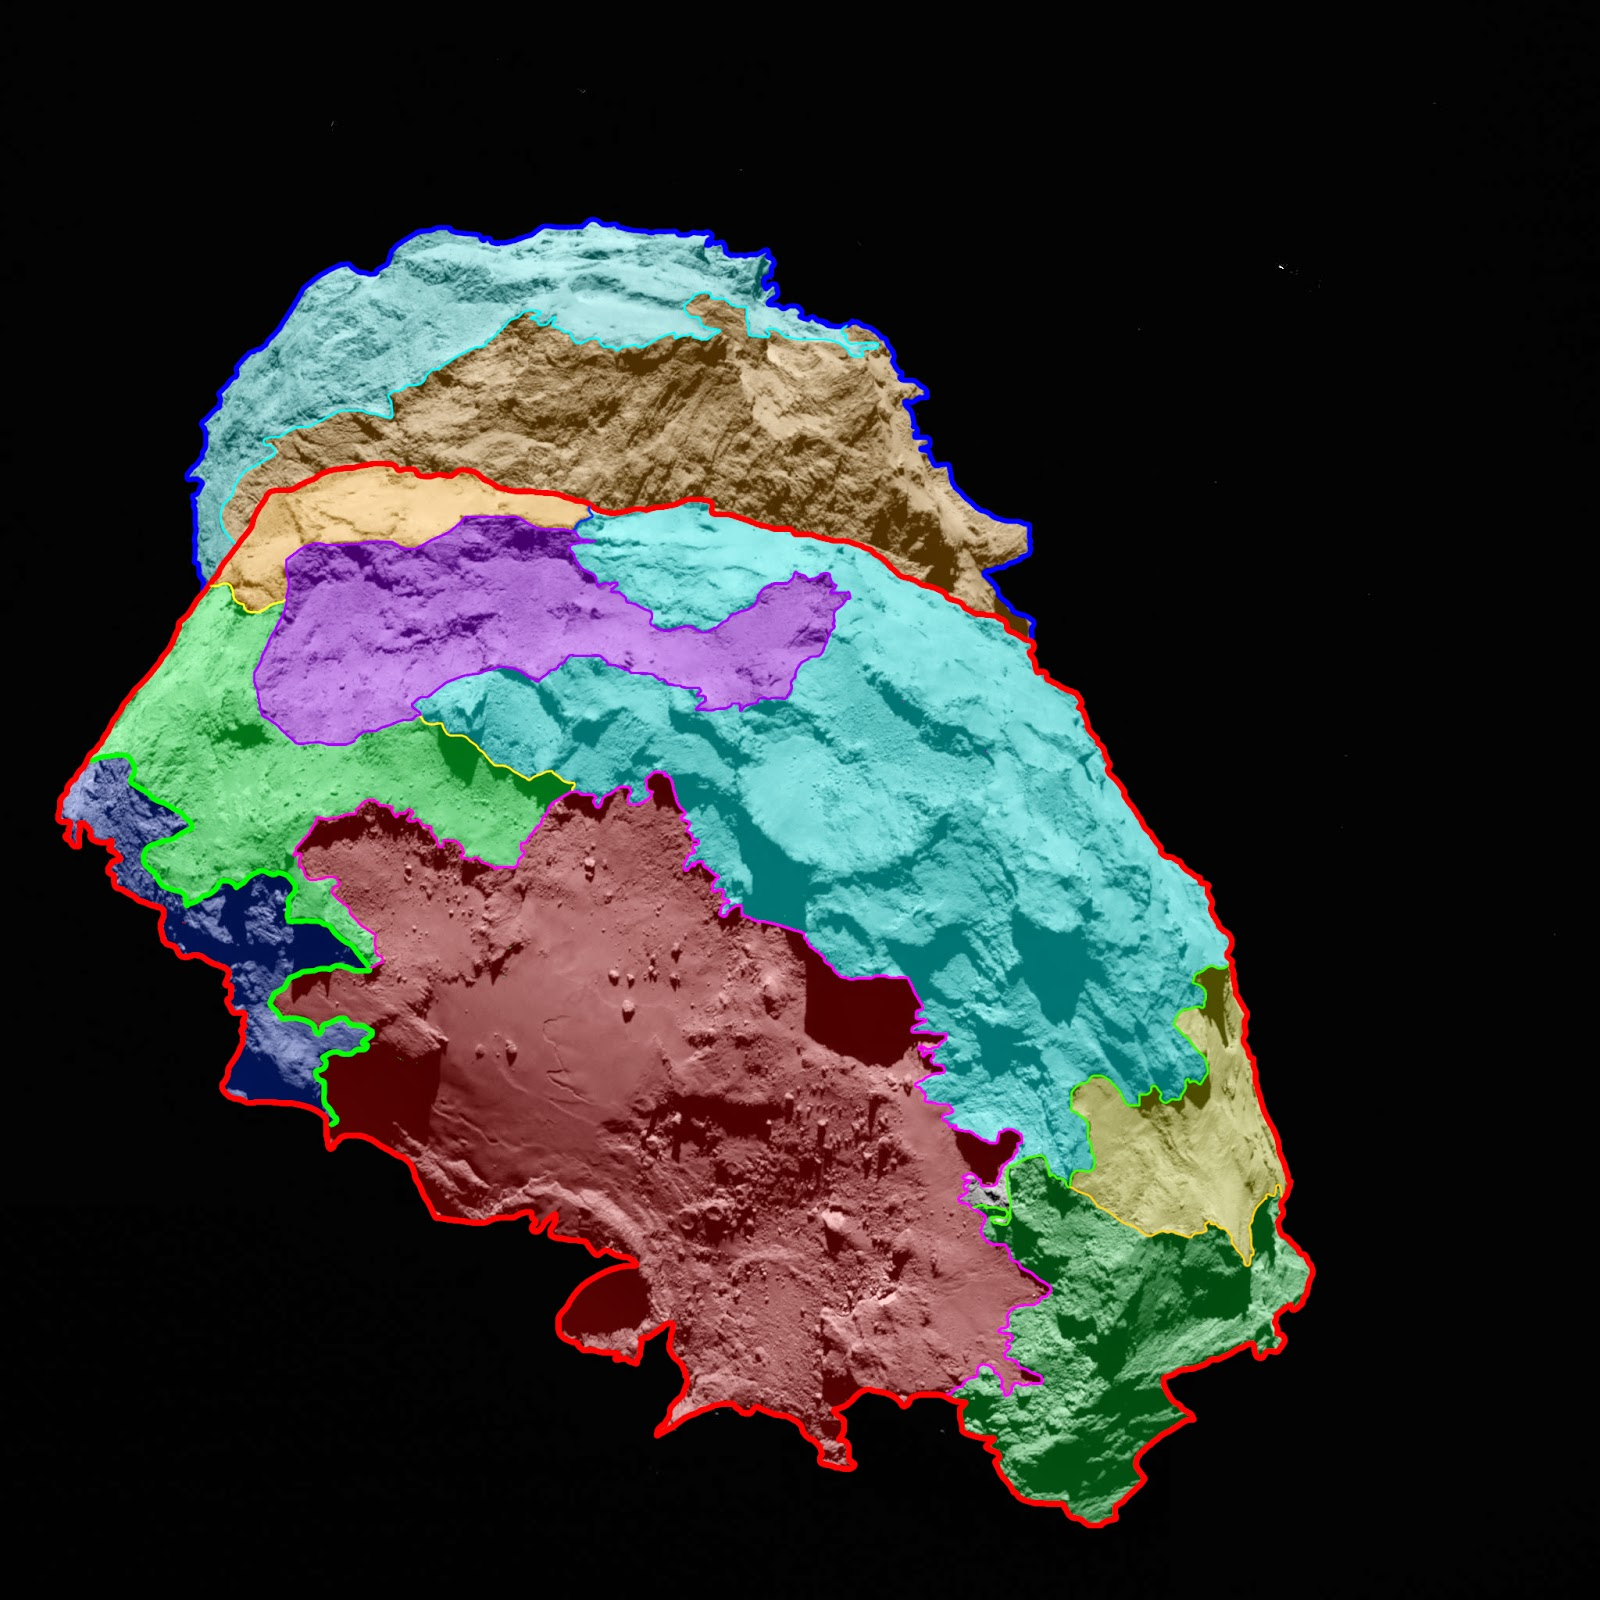 http://orbiterchspacenews.blogspot.co.at/2014/09/first-map-of-rosettas-comet.html?spref=fb